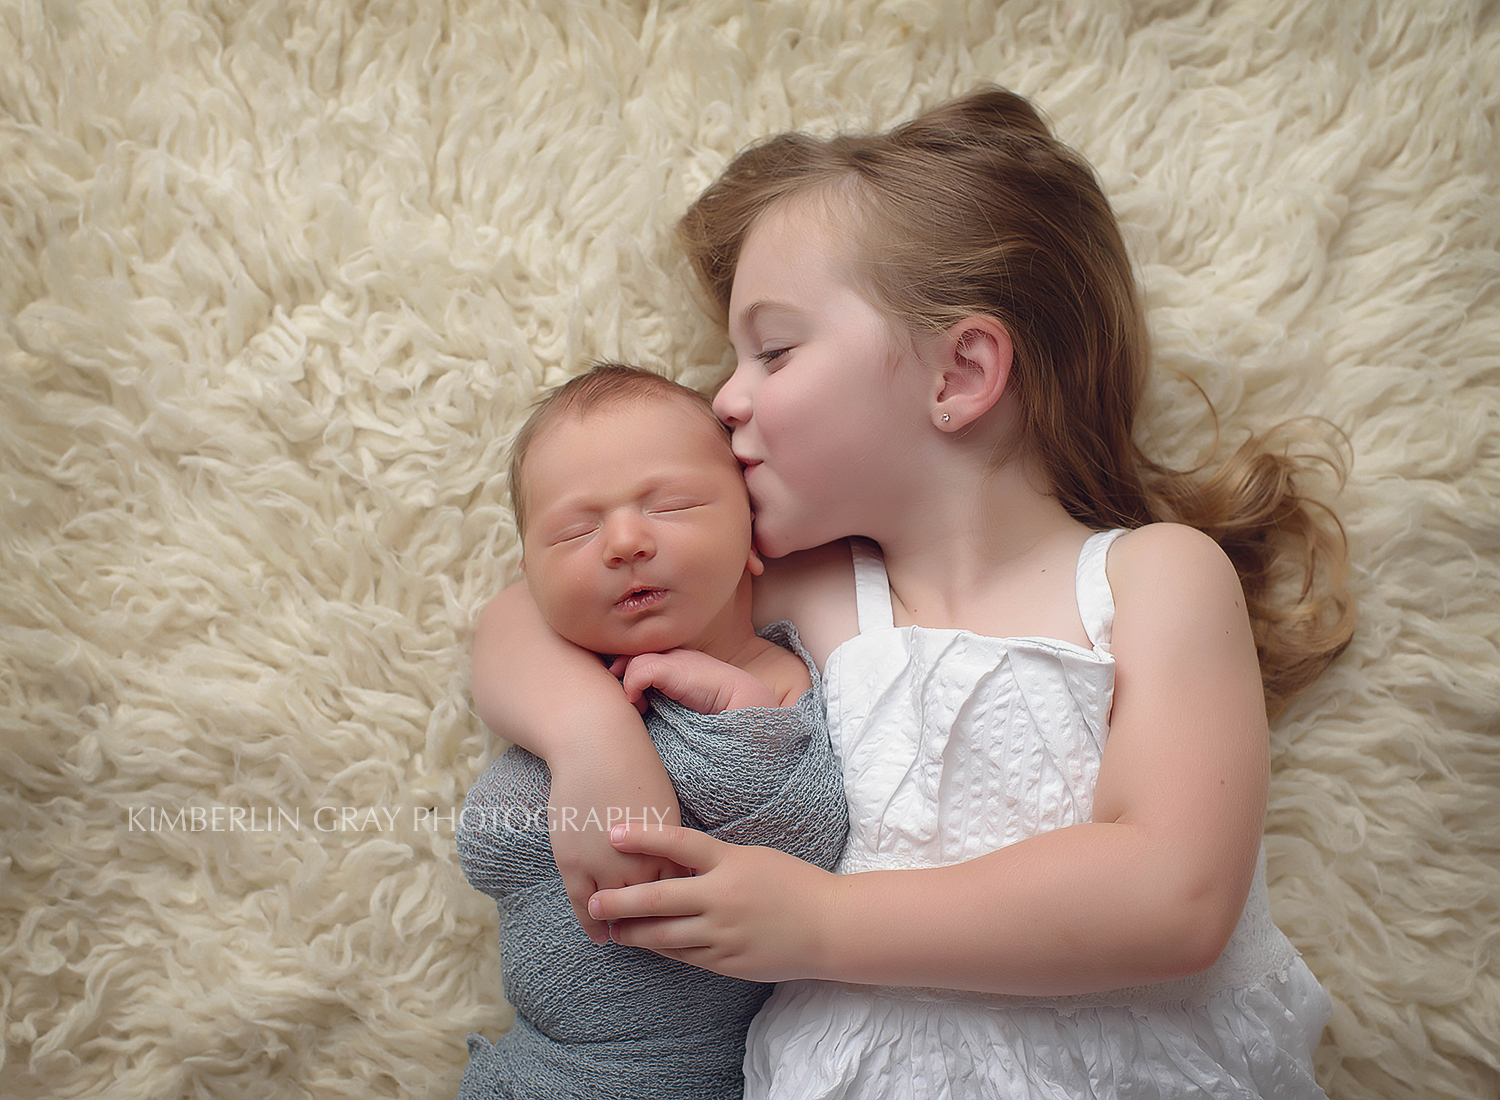 Sibling Love Virginia Beach Newborn Photographer